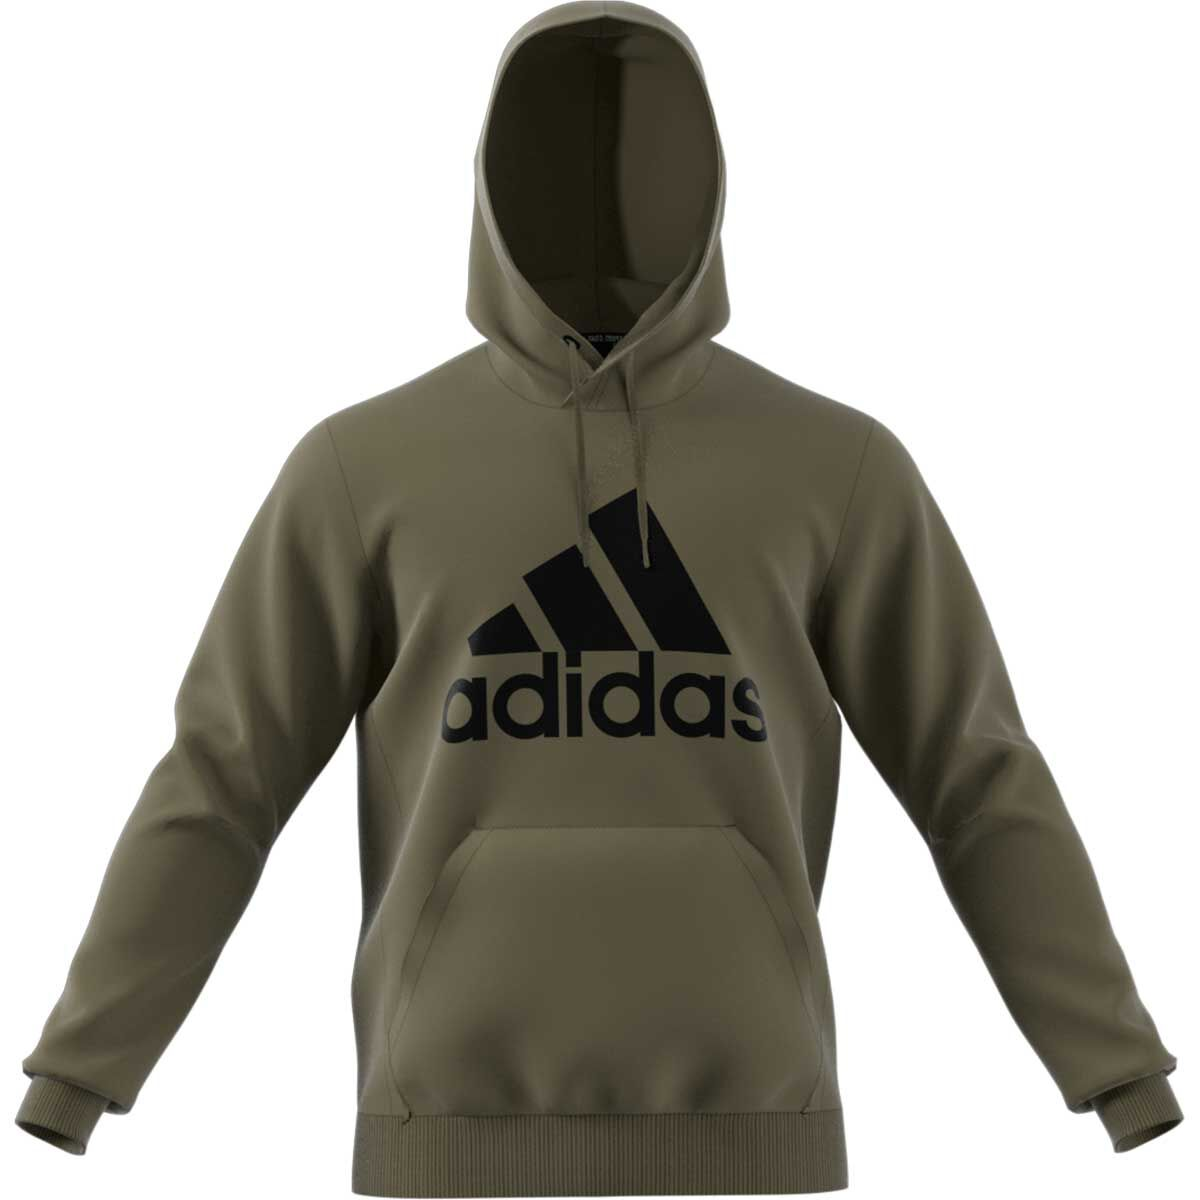 Mens Modern Casual ** G Star Static Hooded Sw ** Overhead Hoodie Top Size Uk L Warm And Windproof Activewear